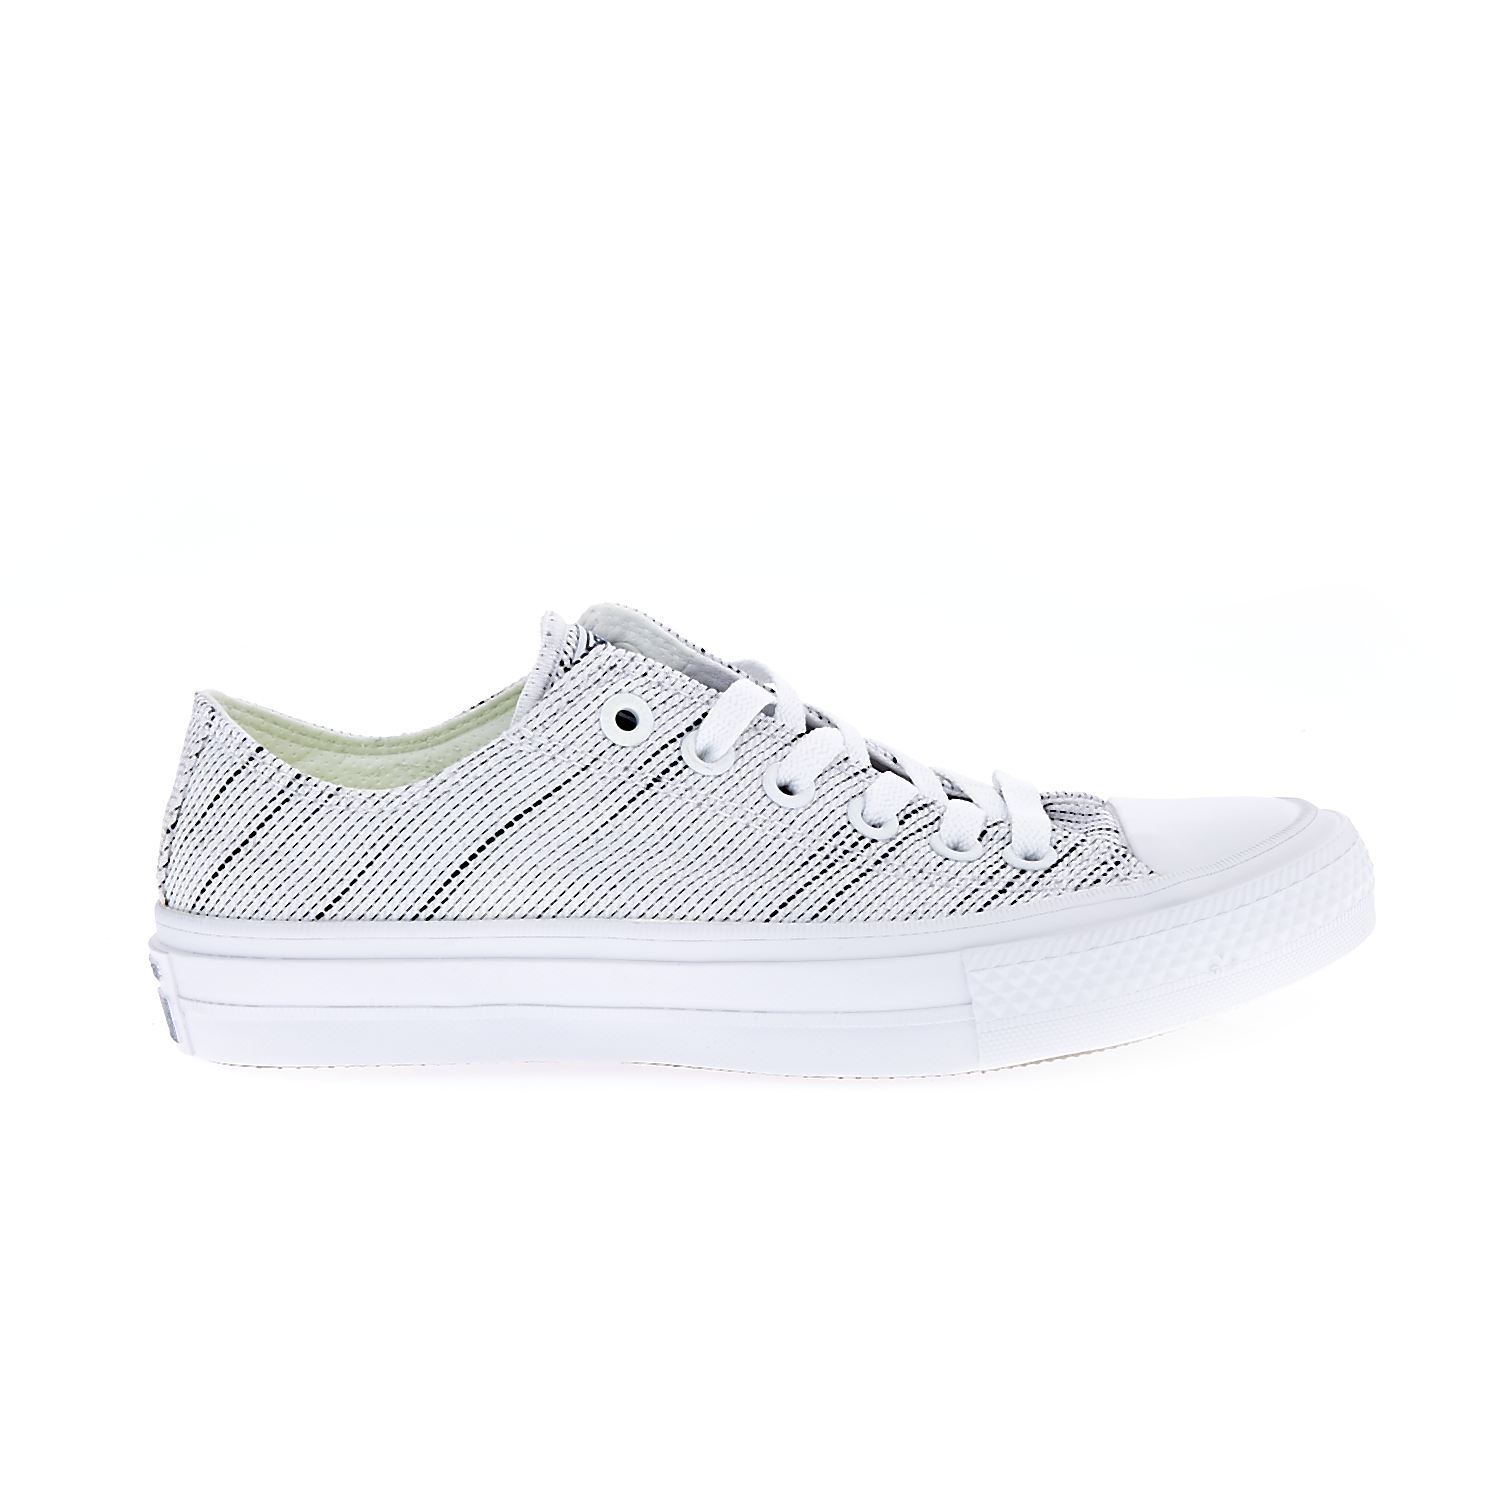 CONVERSE – Unisex παπούτσια Chuck Taylor All Star II Ox λευκά-μαύρα